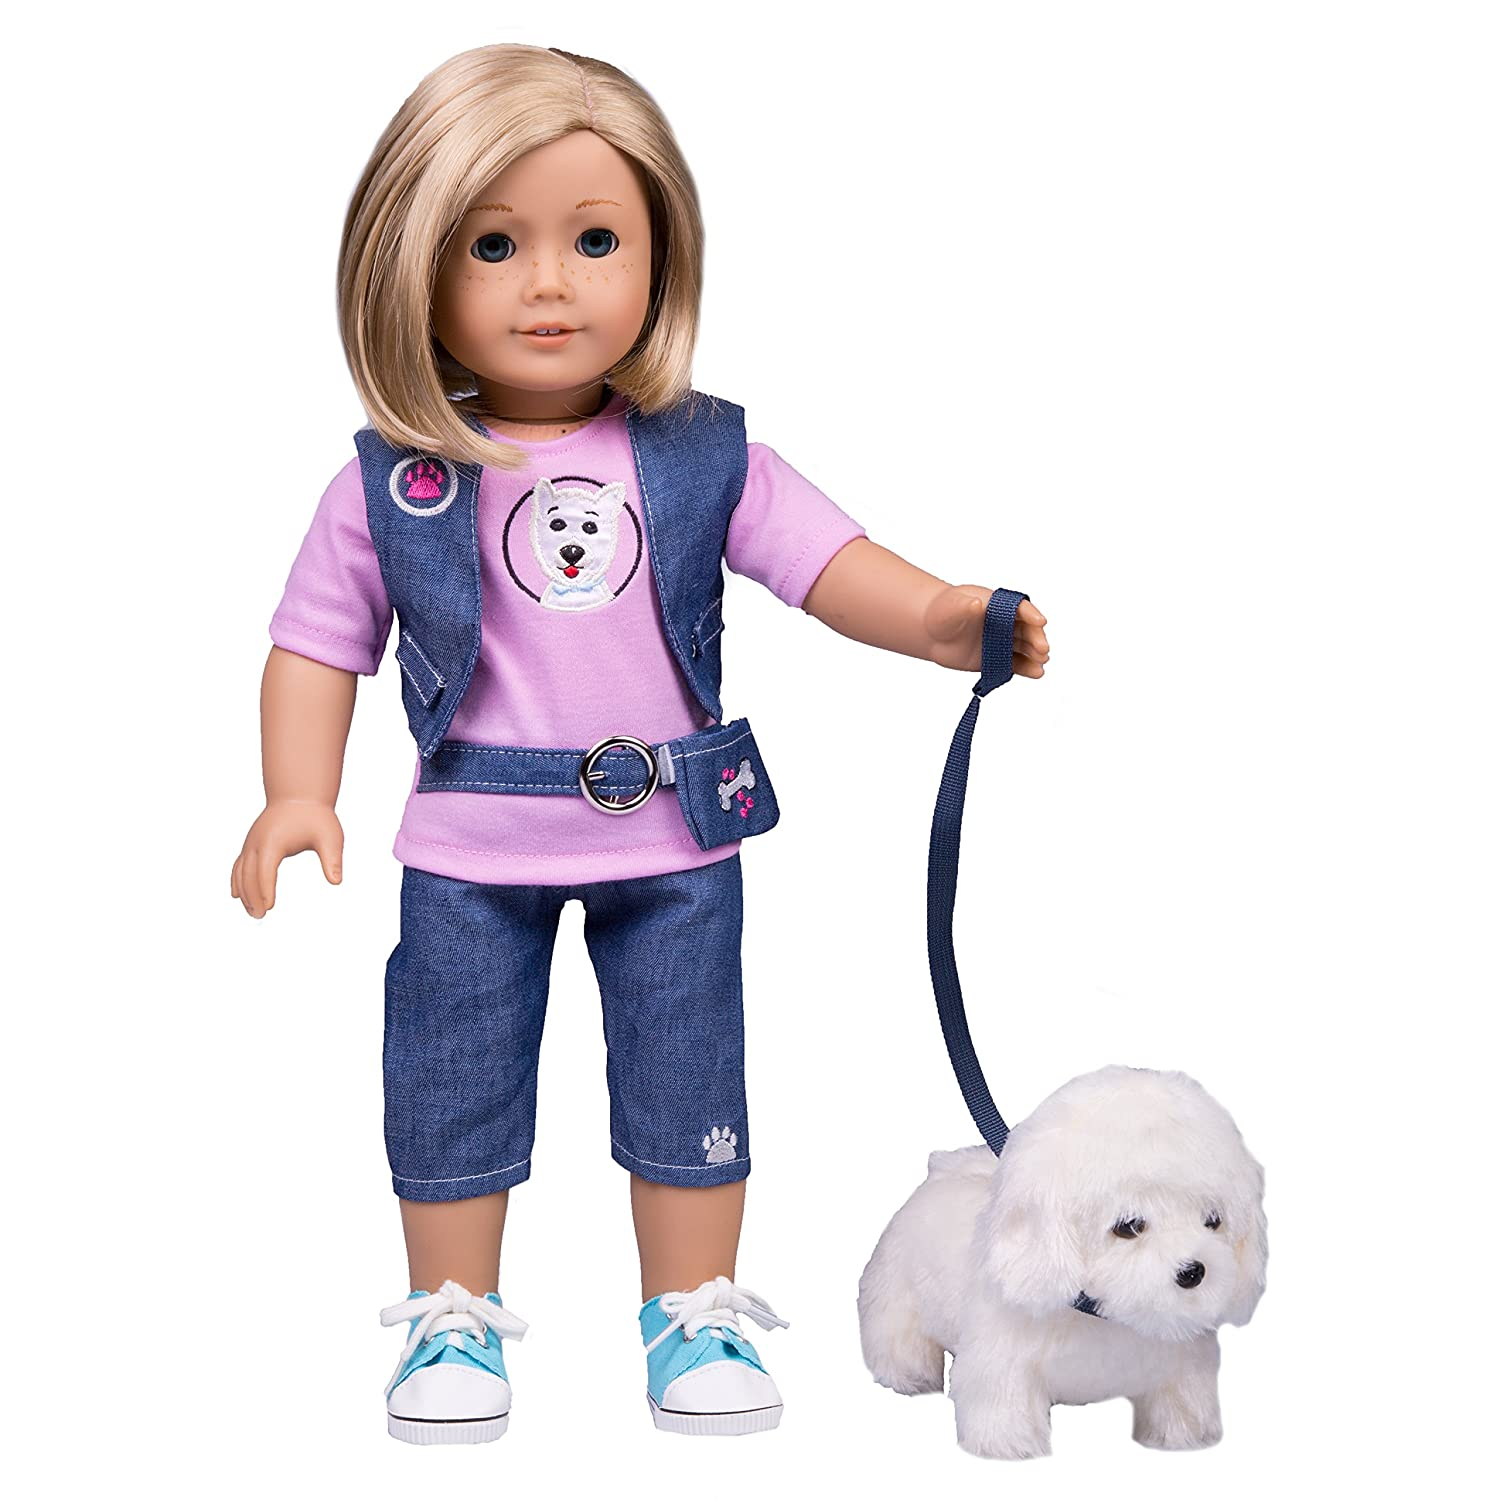 Dress Along Dolly Dog Walker Outfit for American Girl and 18' Dolls (Includes T Shirt, Vest, Pants, Belt, Shoes, Dog, and Leash)